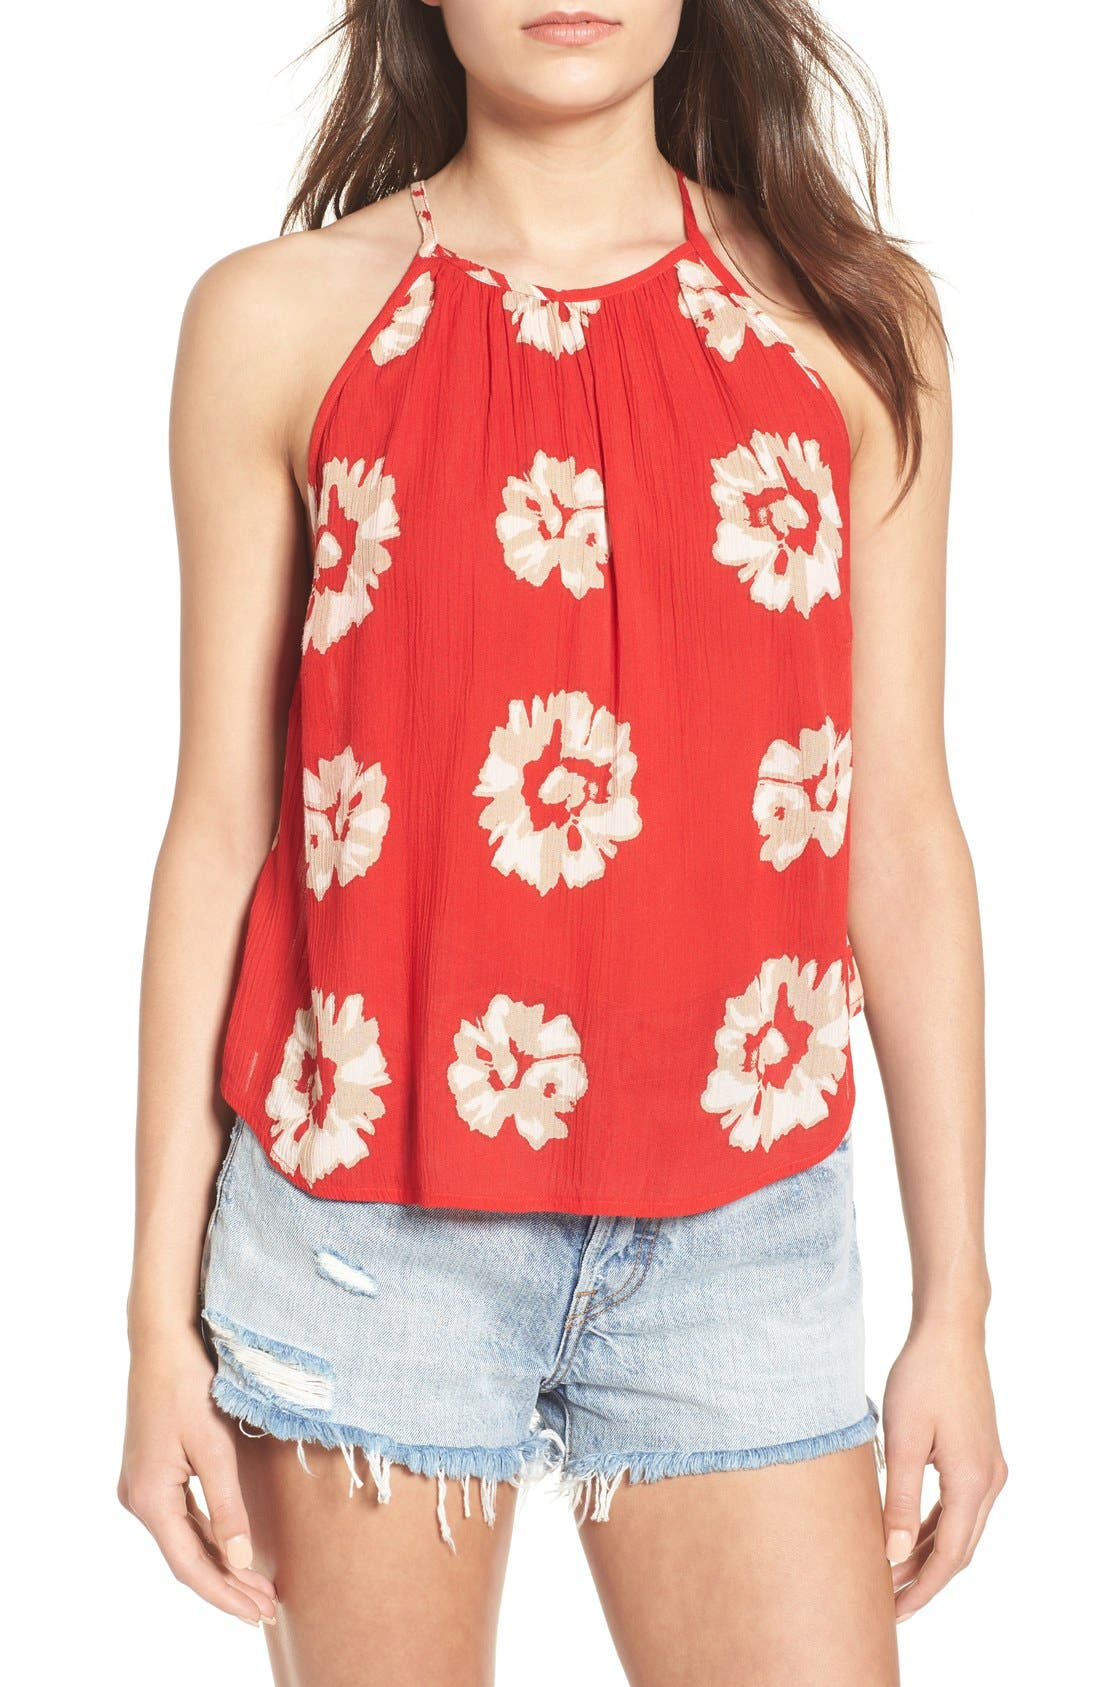 Alternate Image 1 Selected - Band of Gypsies Print High Neck Tank